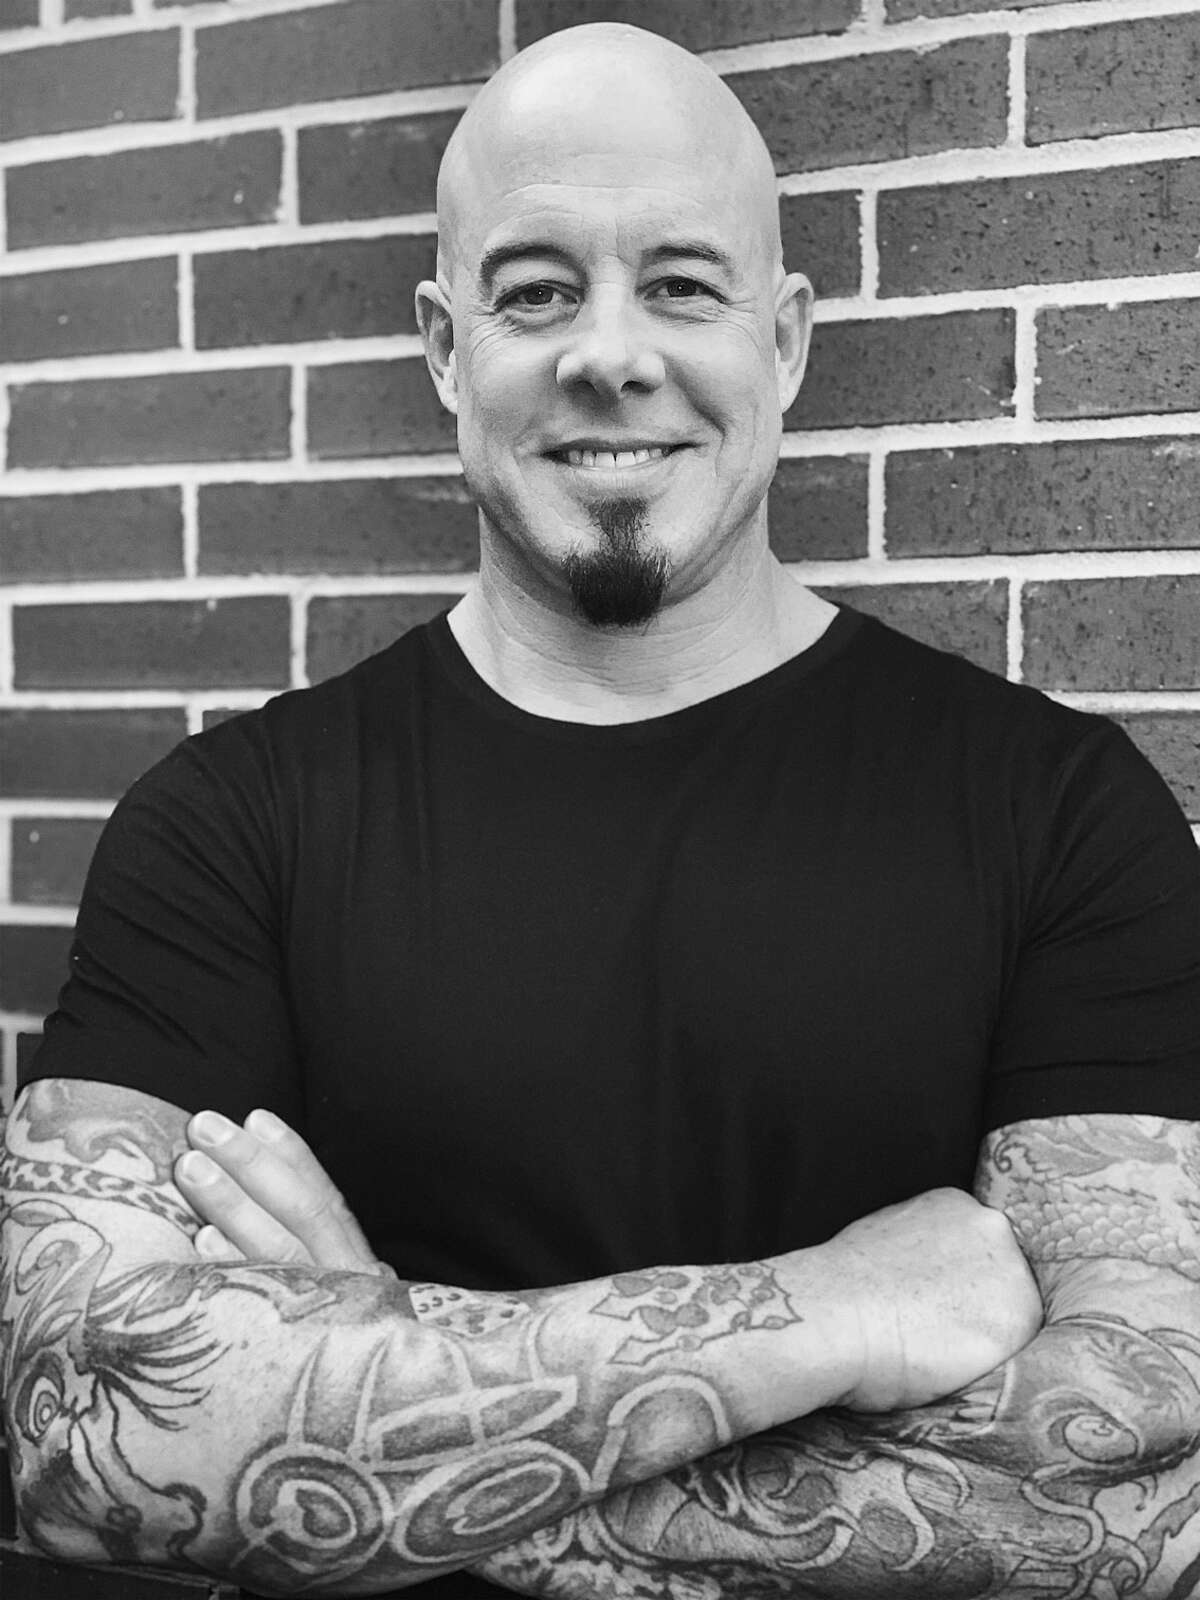 Name: GregoStation The Spot, 95.7 FM RELATED: Former Outlaw Radio and NewsFix personality Grego hits 'The Spot' with new radio show